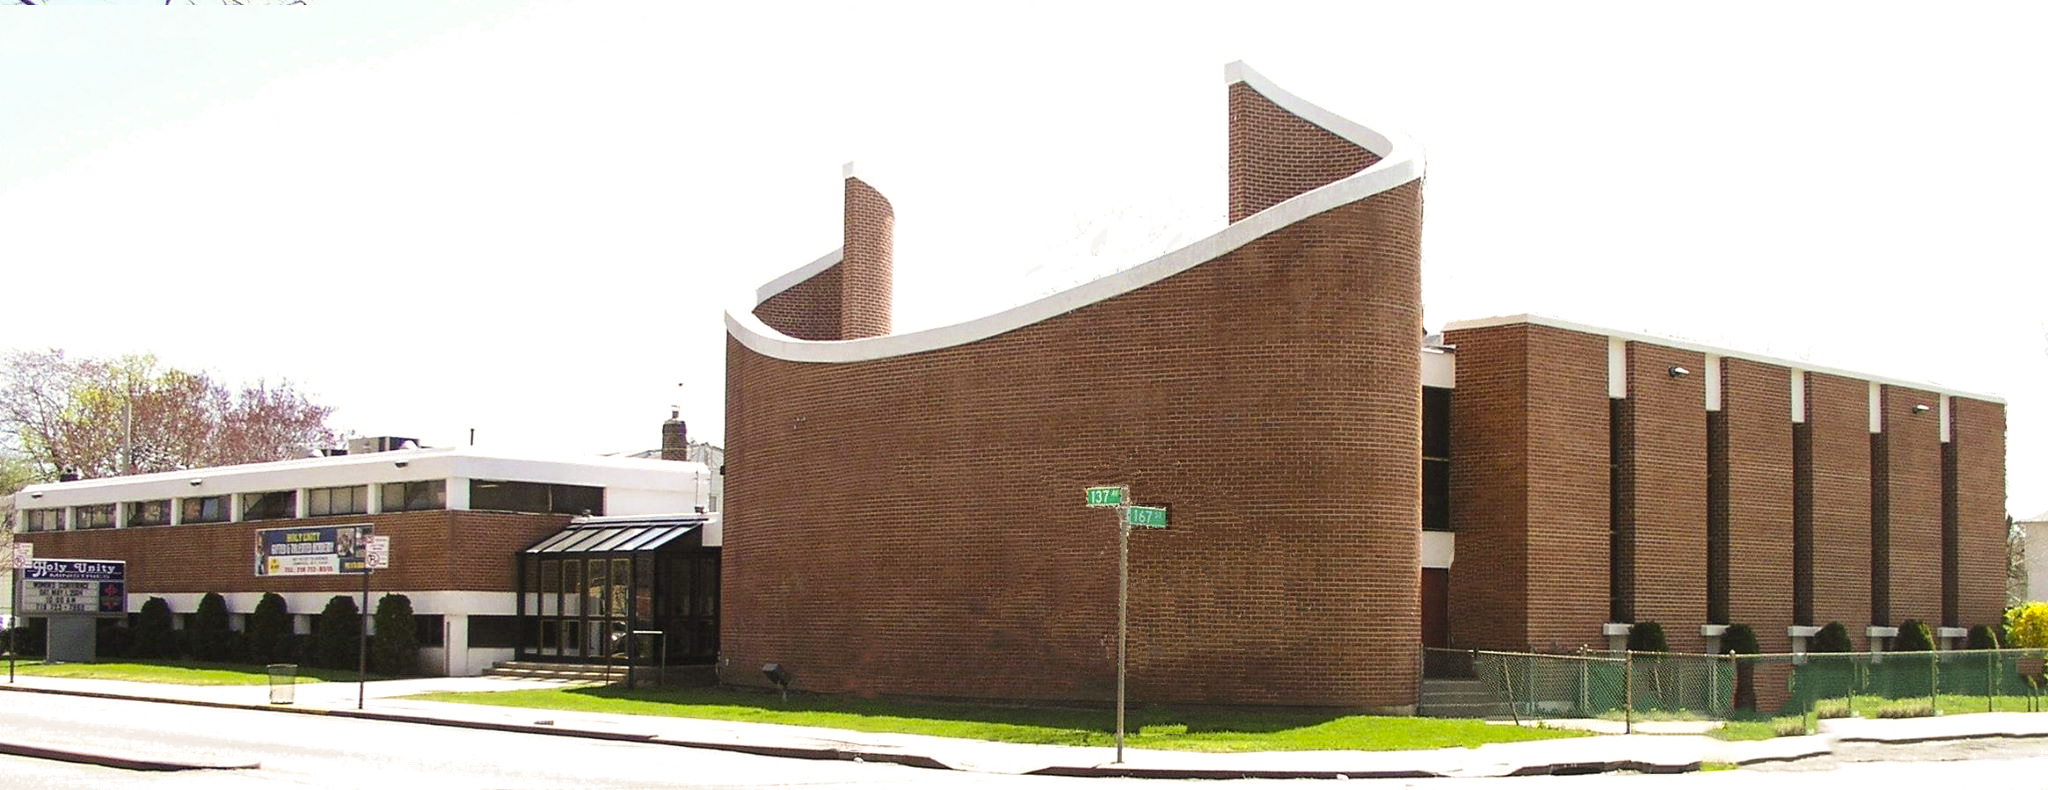 synagogue profile